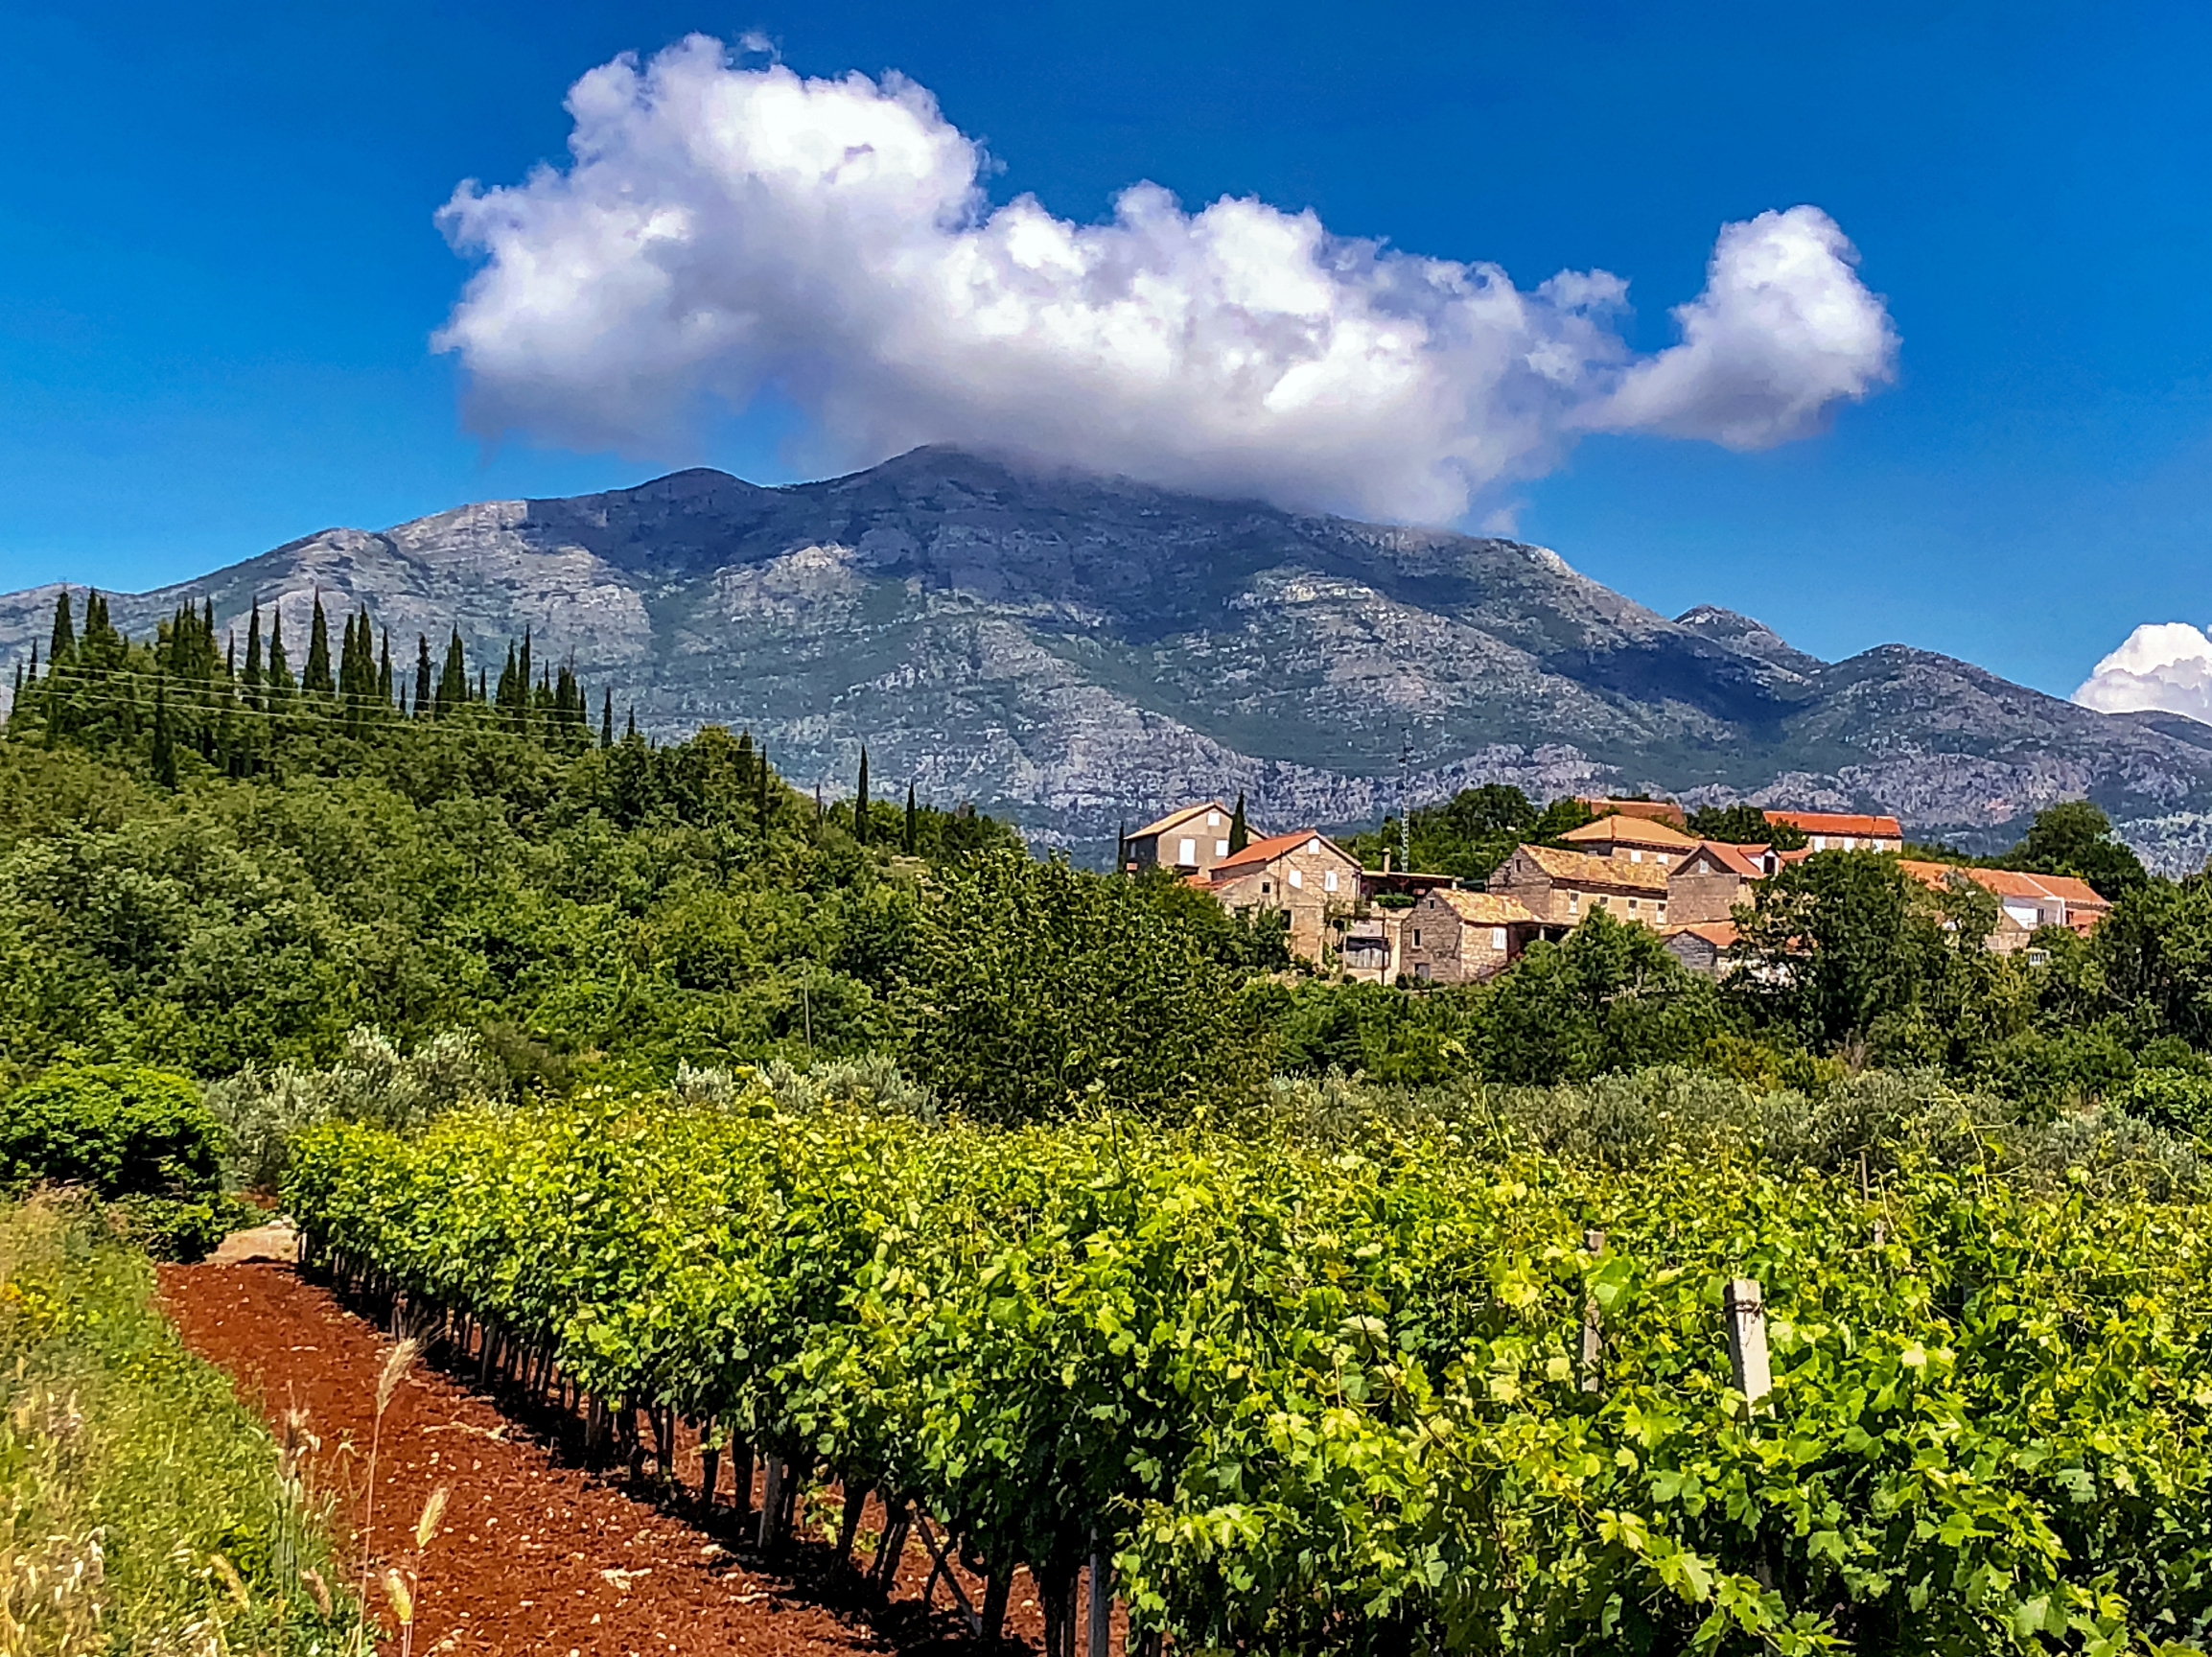 Visit Some of the Beautiful Vineyards in Croatia